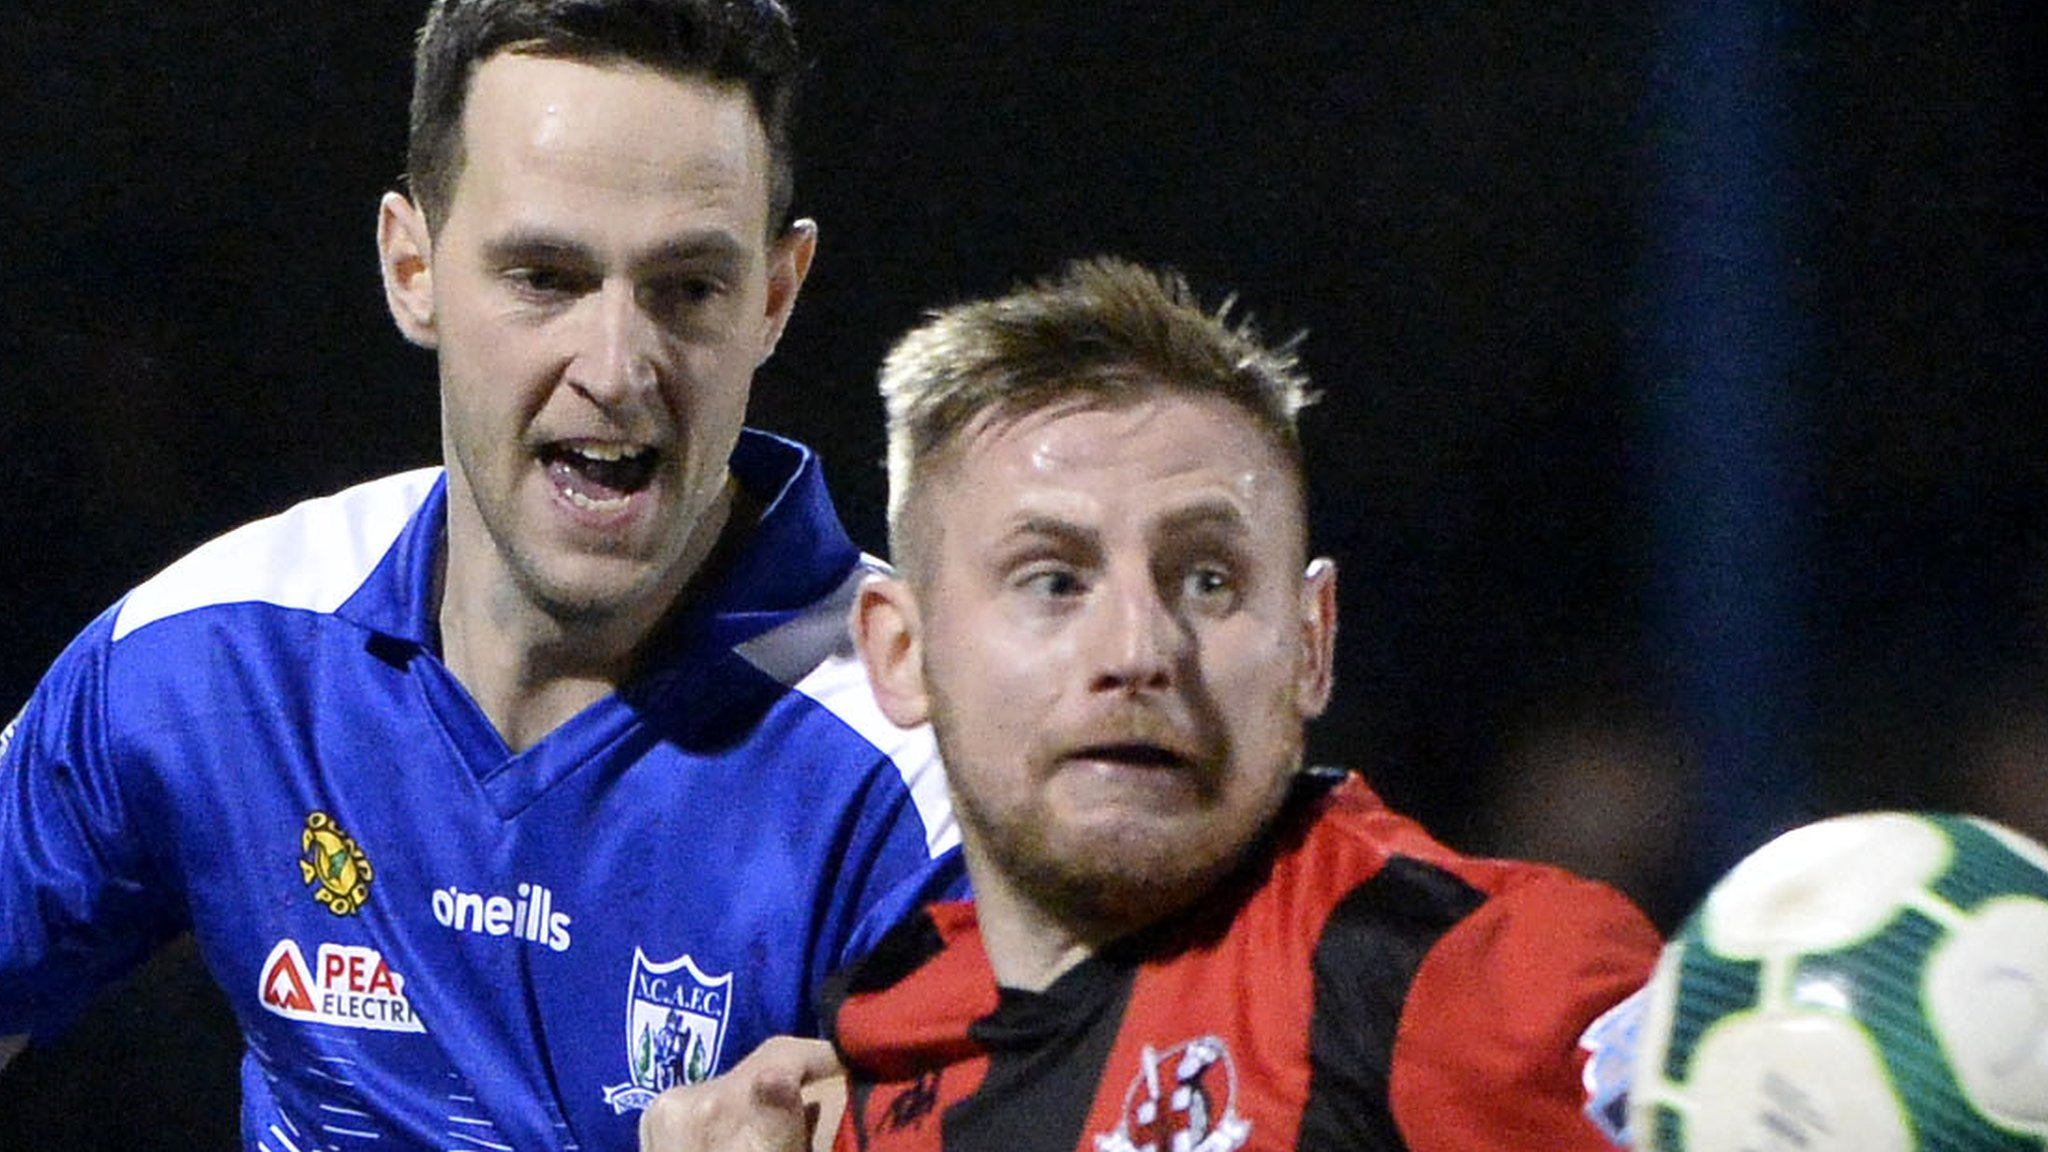 Truth or Not? Irish Premiership: Crues move second with win over Newry